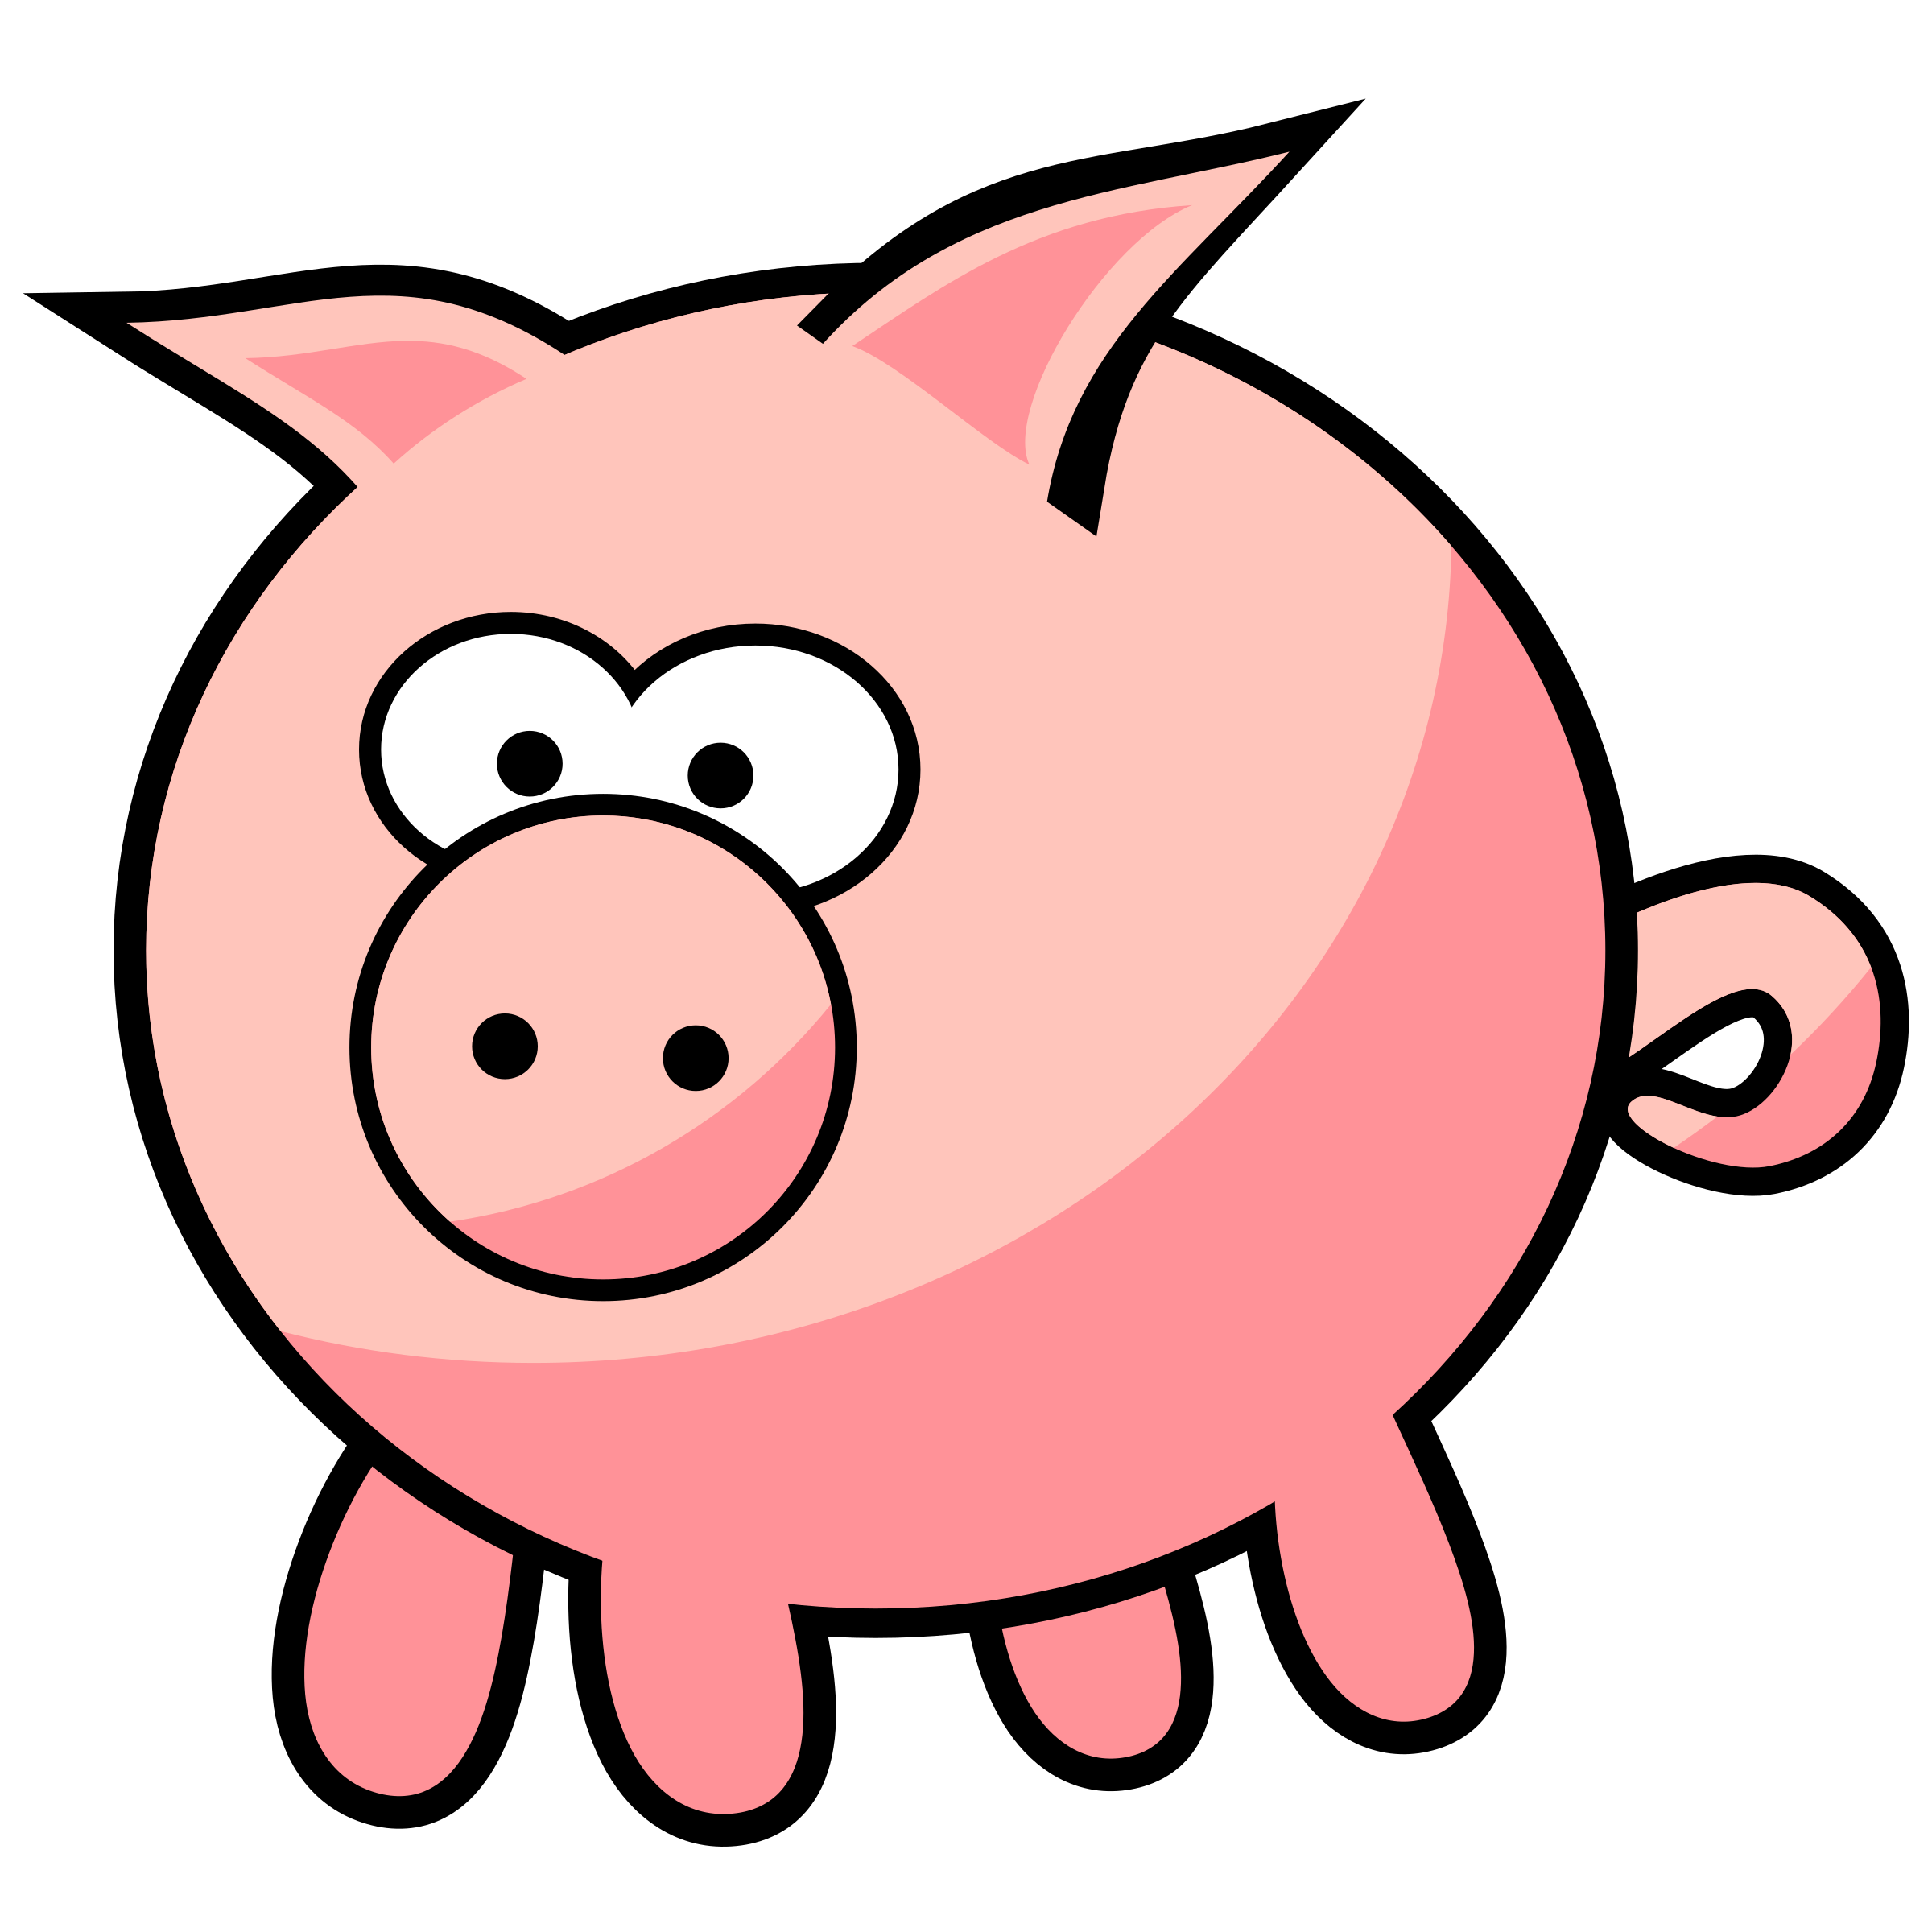 Pictures group with items. Pig clip art cartoon clip art stock